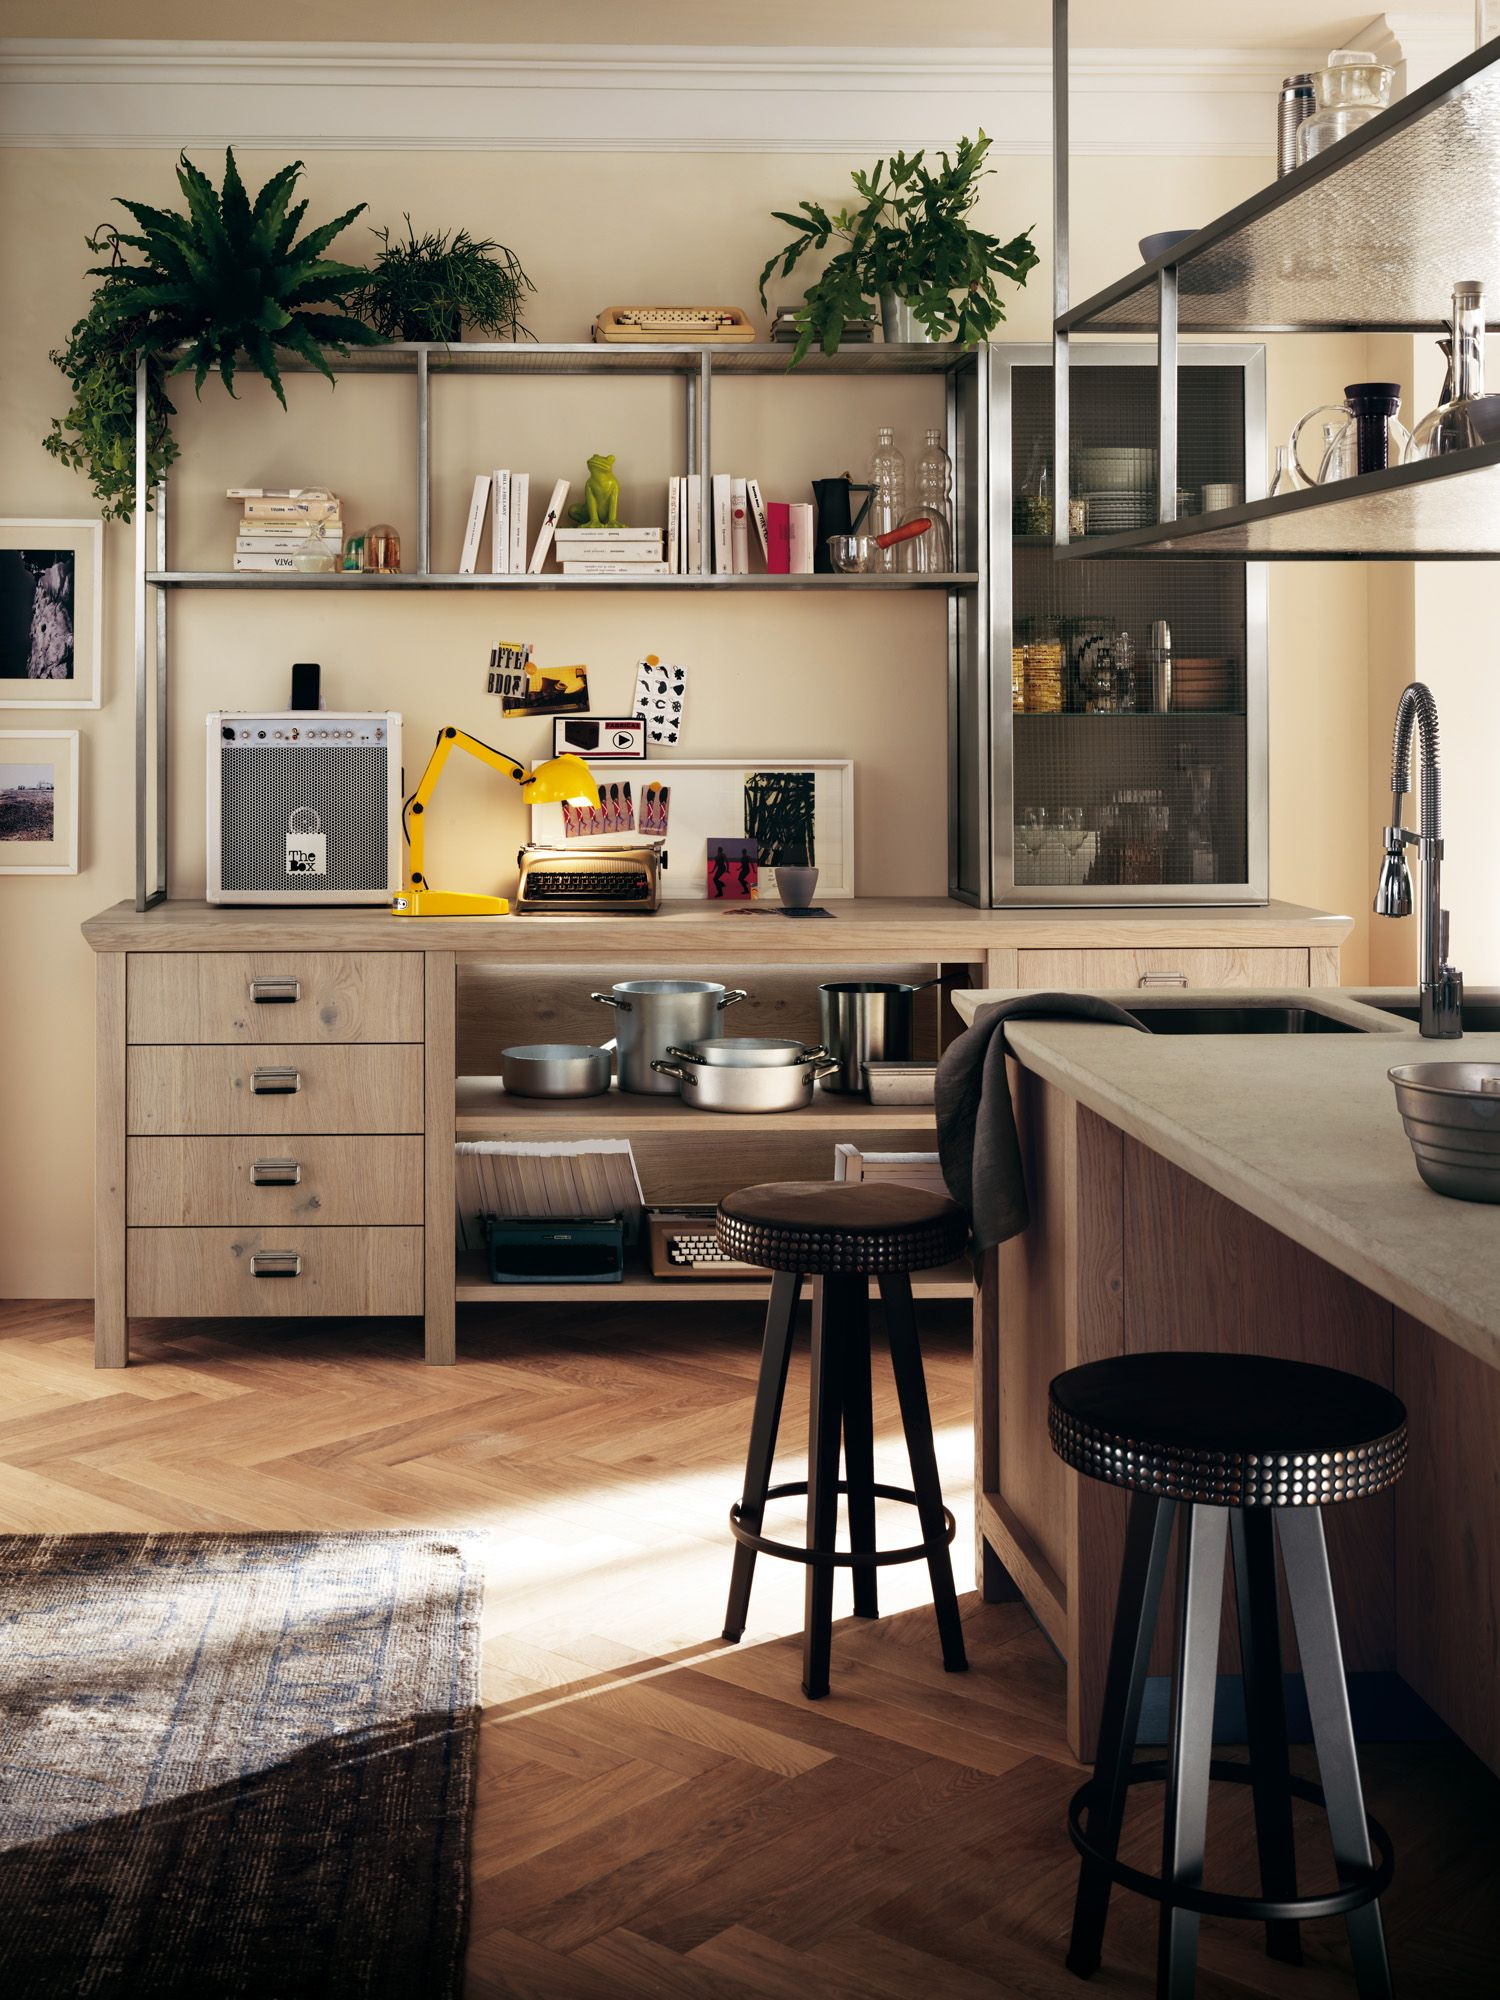 Diesel Social Kitchen design by Diesel. Design values and ...